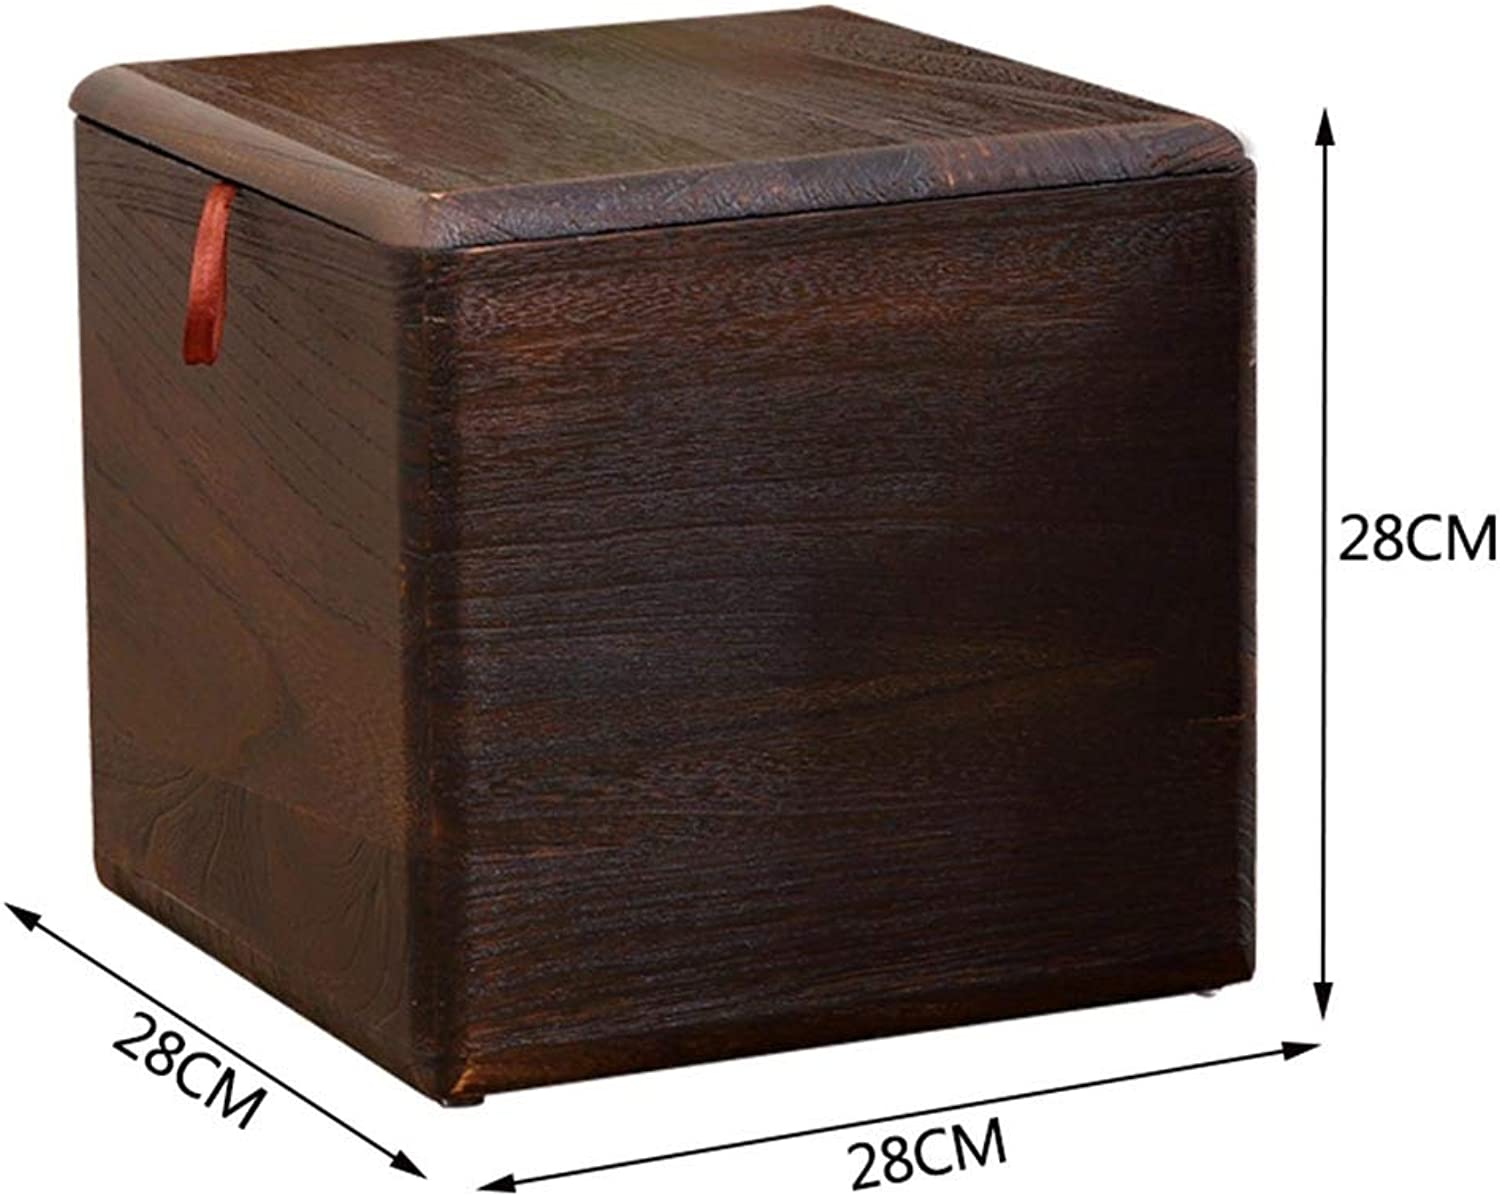 Tingting-Stools, Multifunction Can Sit Toy Sundries Living Room Bedroom Storage Footrest (color   Brown, Size   28  28  28)